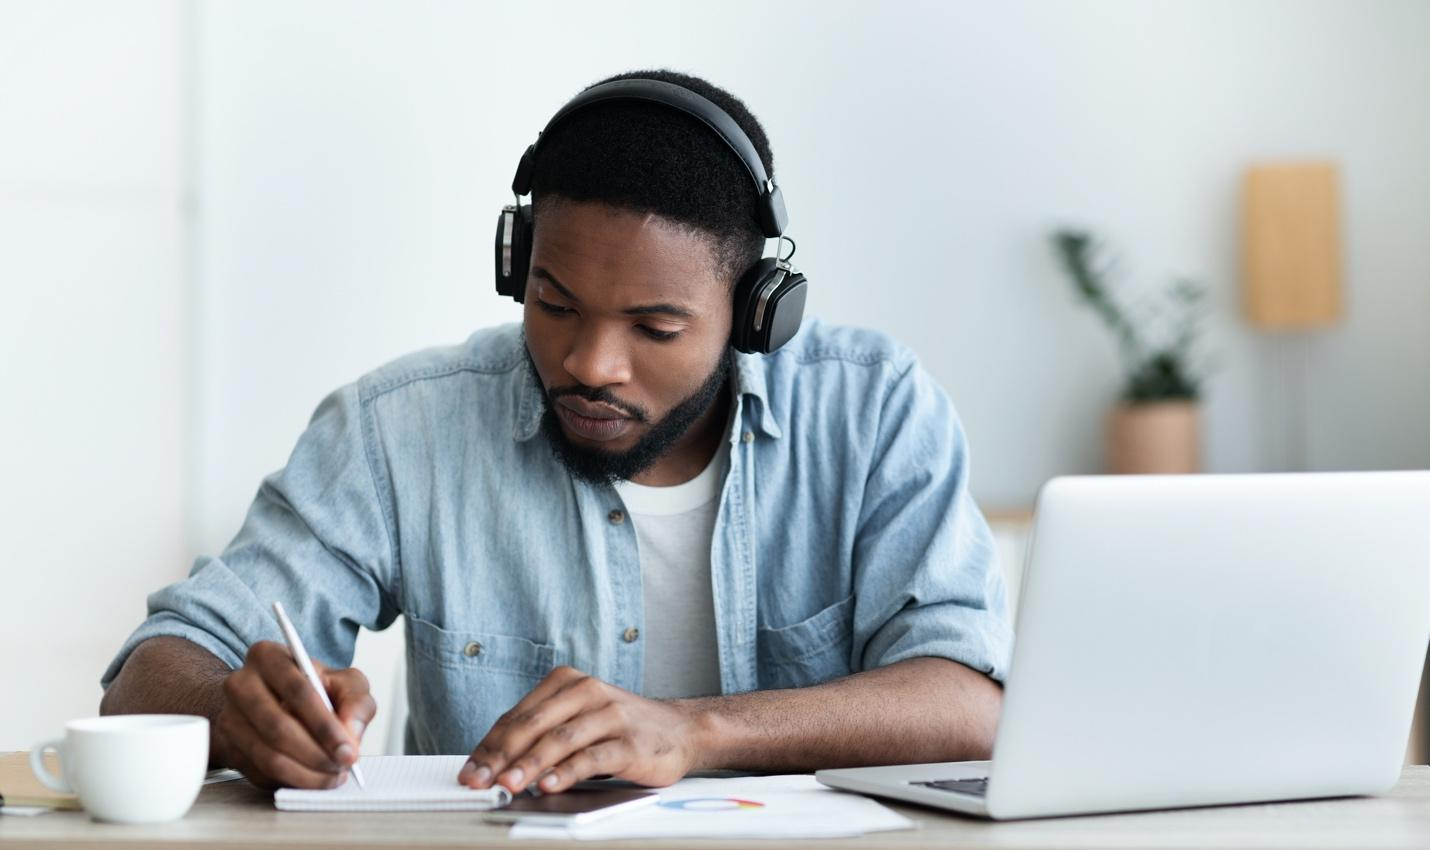 African American man wearing headphones and studying in front of a computer